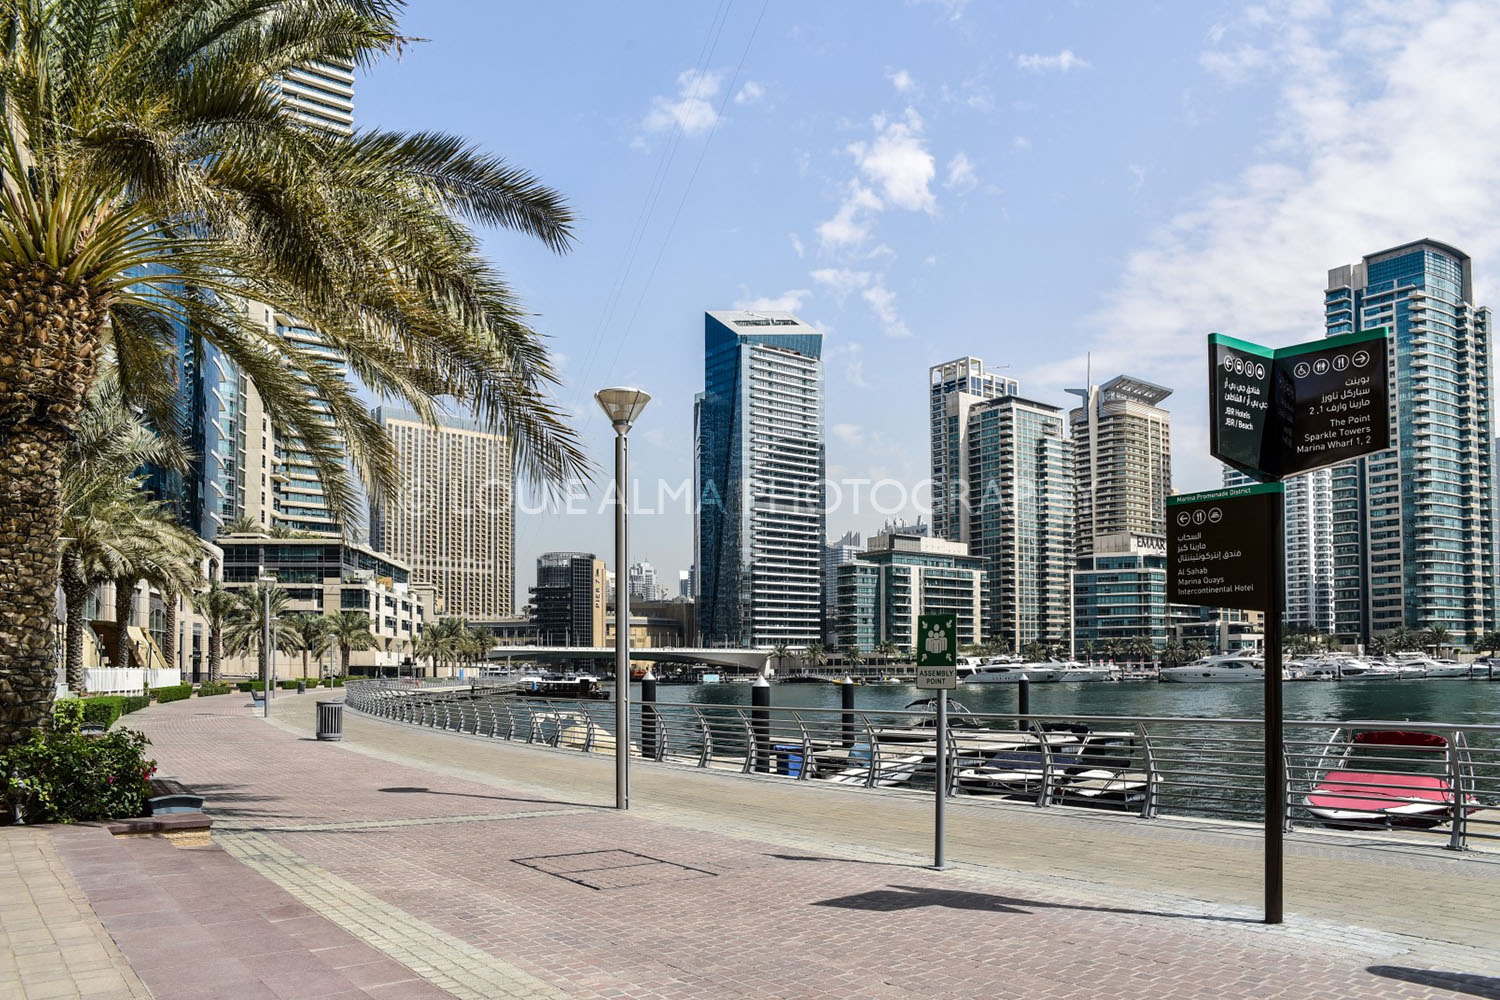 Louie Alma - Travel Photography, Dubai Marina Walk